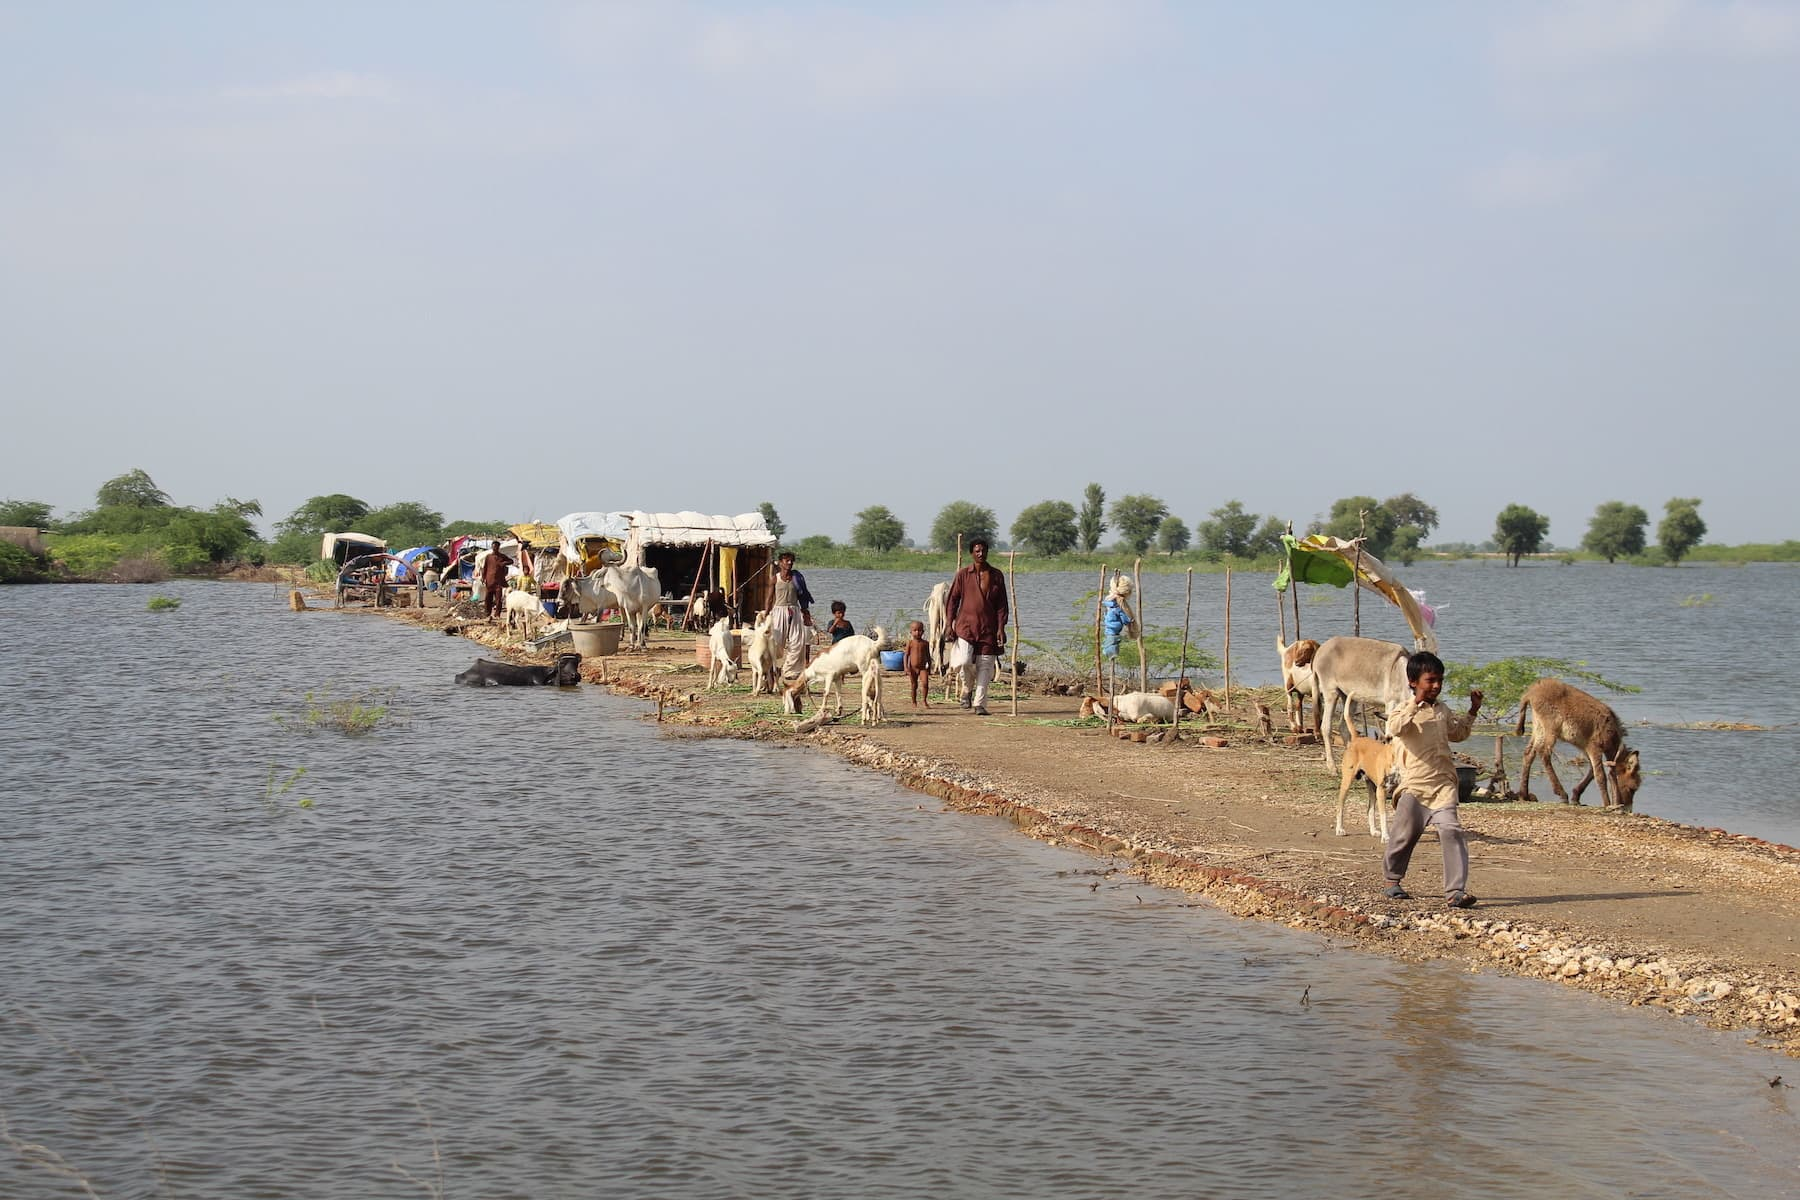 Villagers in Sindhri,  Mirpurkhas district, have set up makeshift tents on a dry stretch of land surrounded by miles of inundated fields. Large swathes of land have been inundated by rain water, forcing hundreds of thousands of people to abandon their homes. — Photo by author